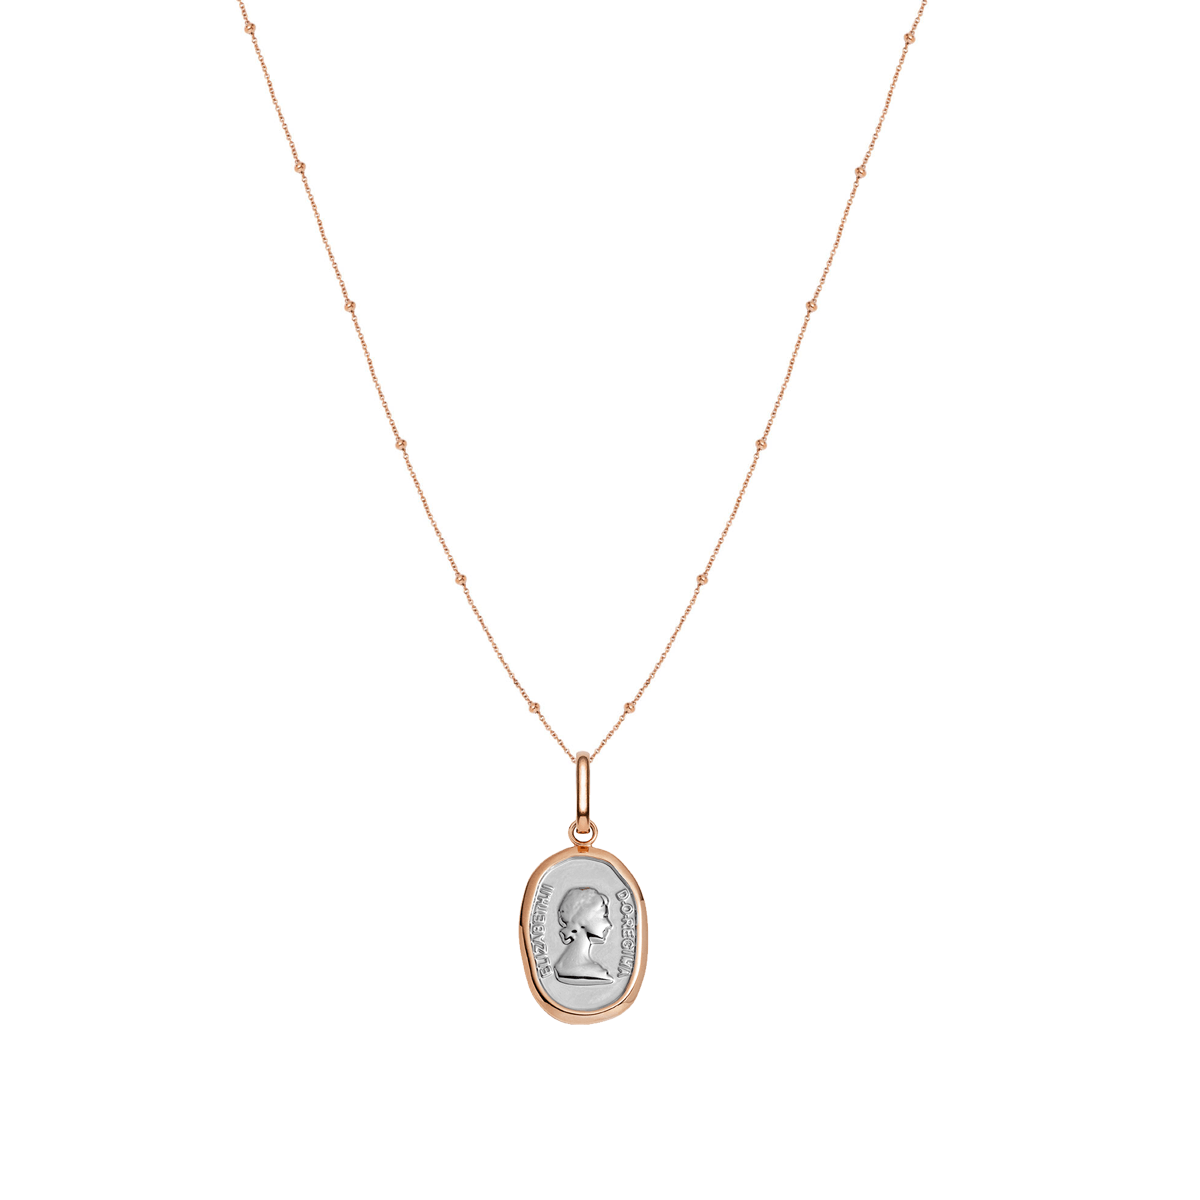 Queen Sphere Chain Necklace 20 in (Rose Gold)